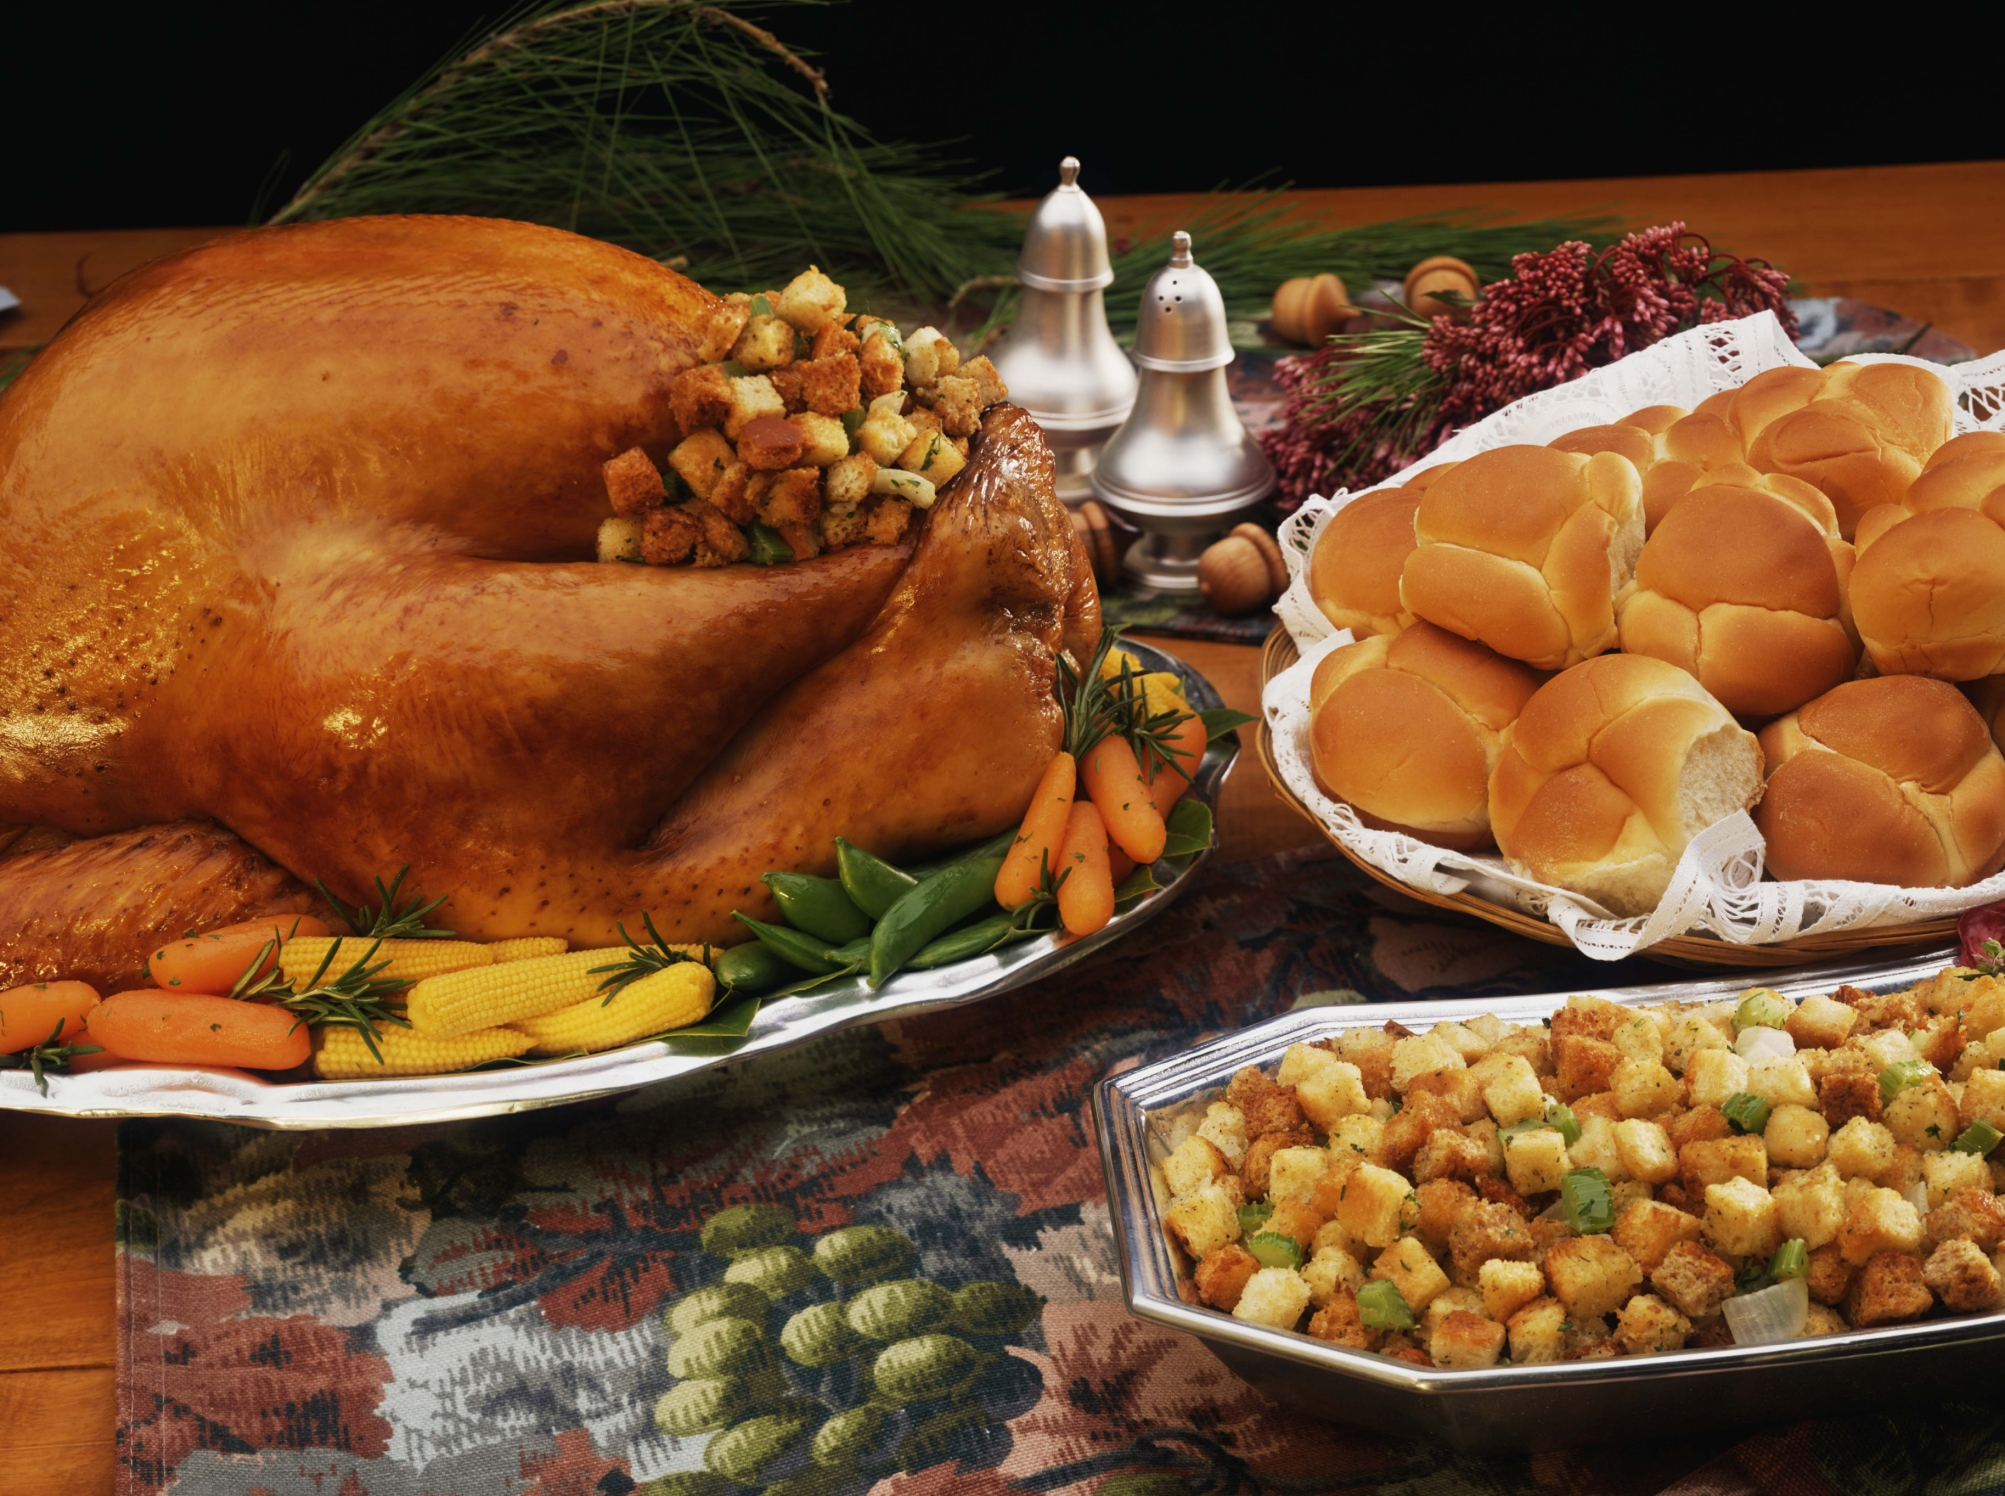 before the holiday feast new data on pesticides in food raises before the holiday feast new data on pesticides in food raises safety questions